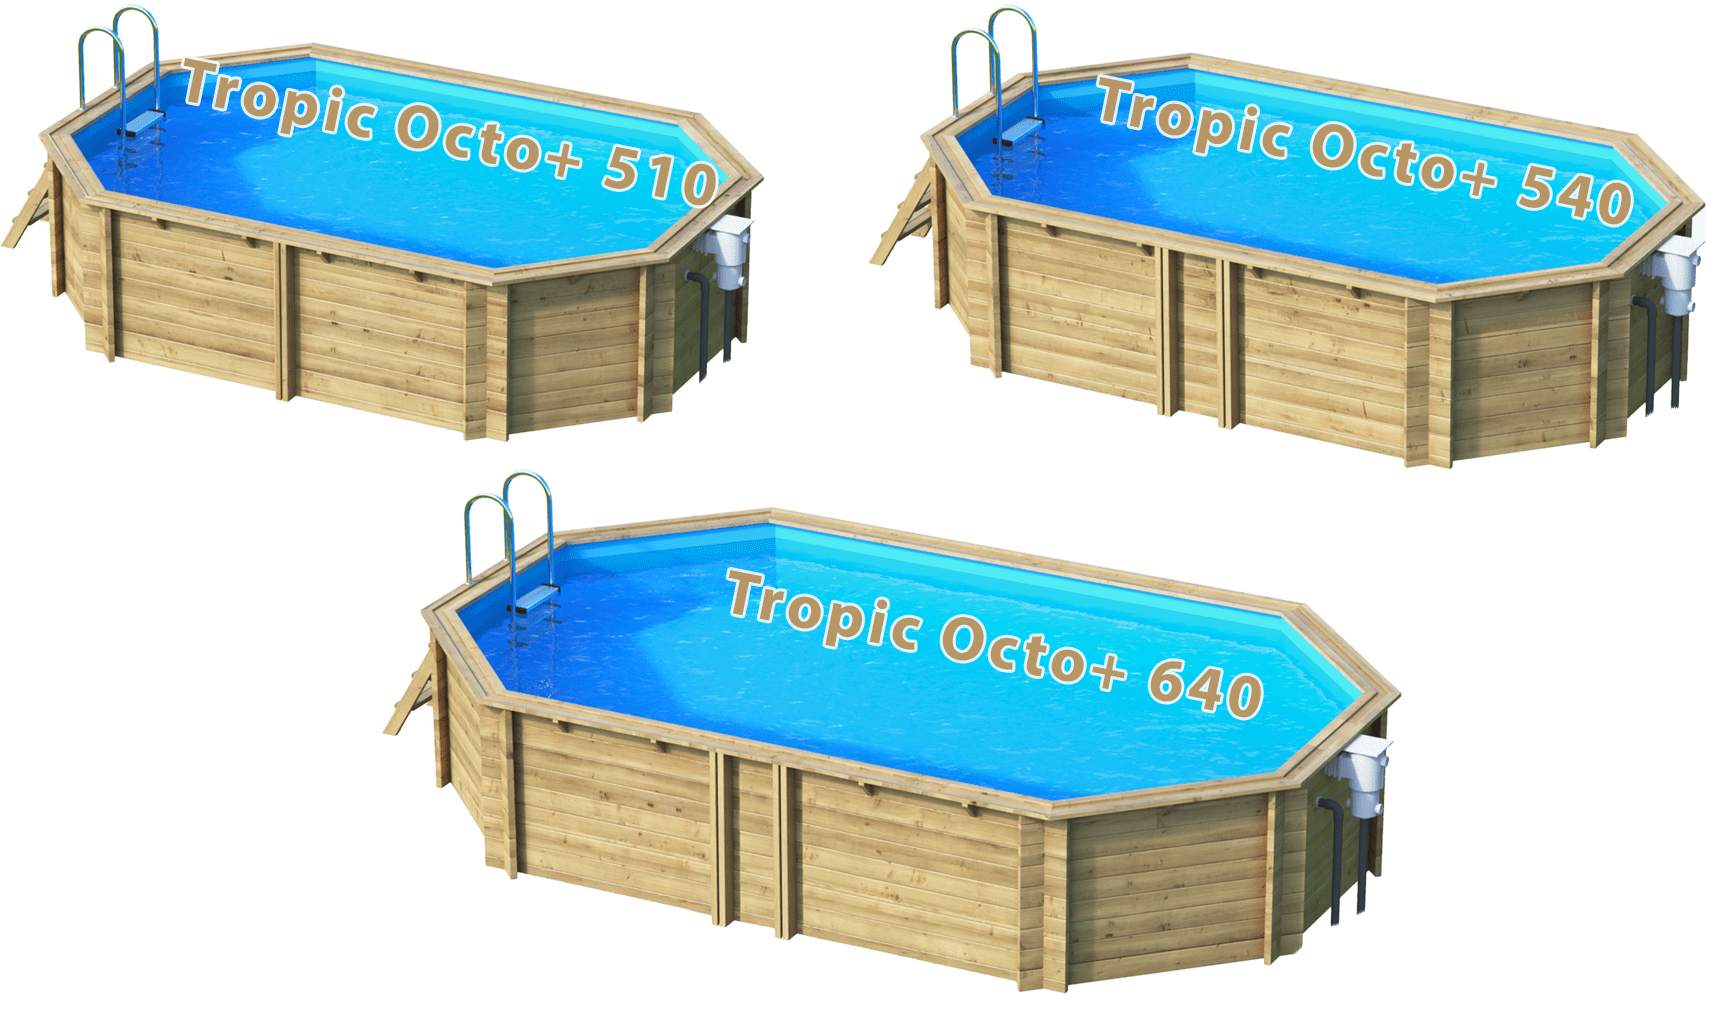 Pool Solarheizung Komplettset Pool Aus Massivholz Tropic Octo 43 Sunday Pools Onlineshop